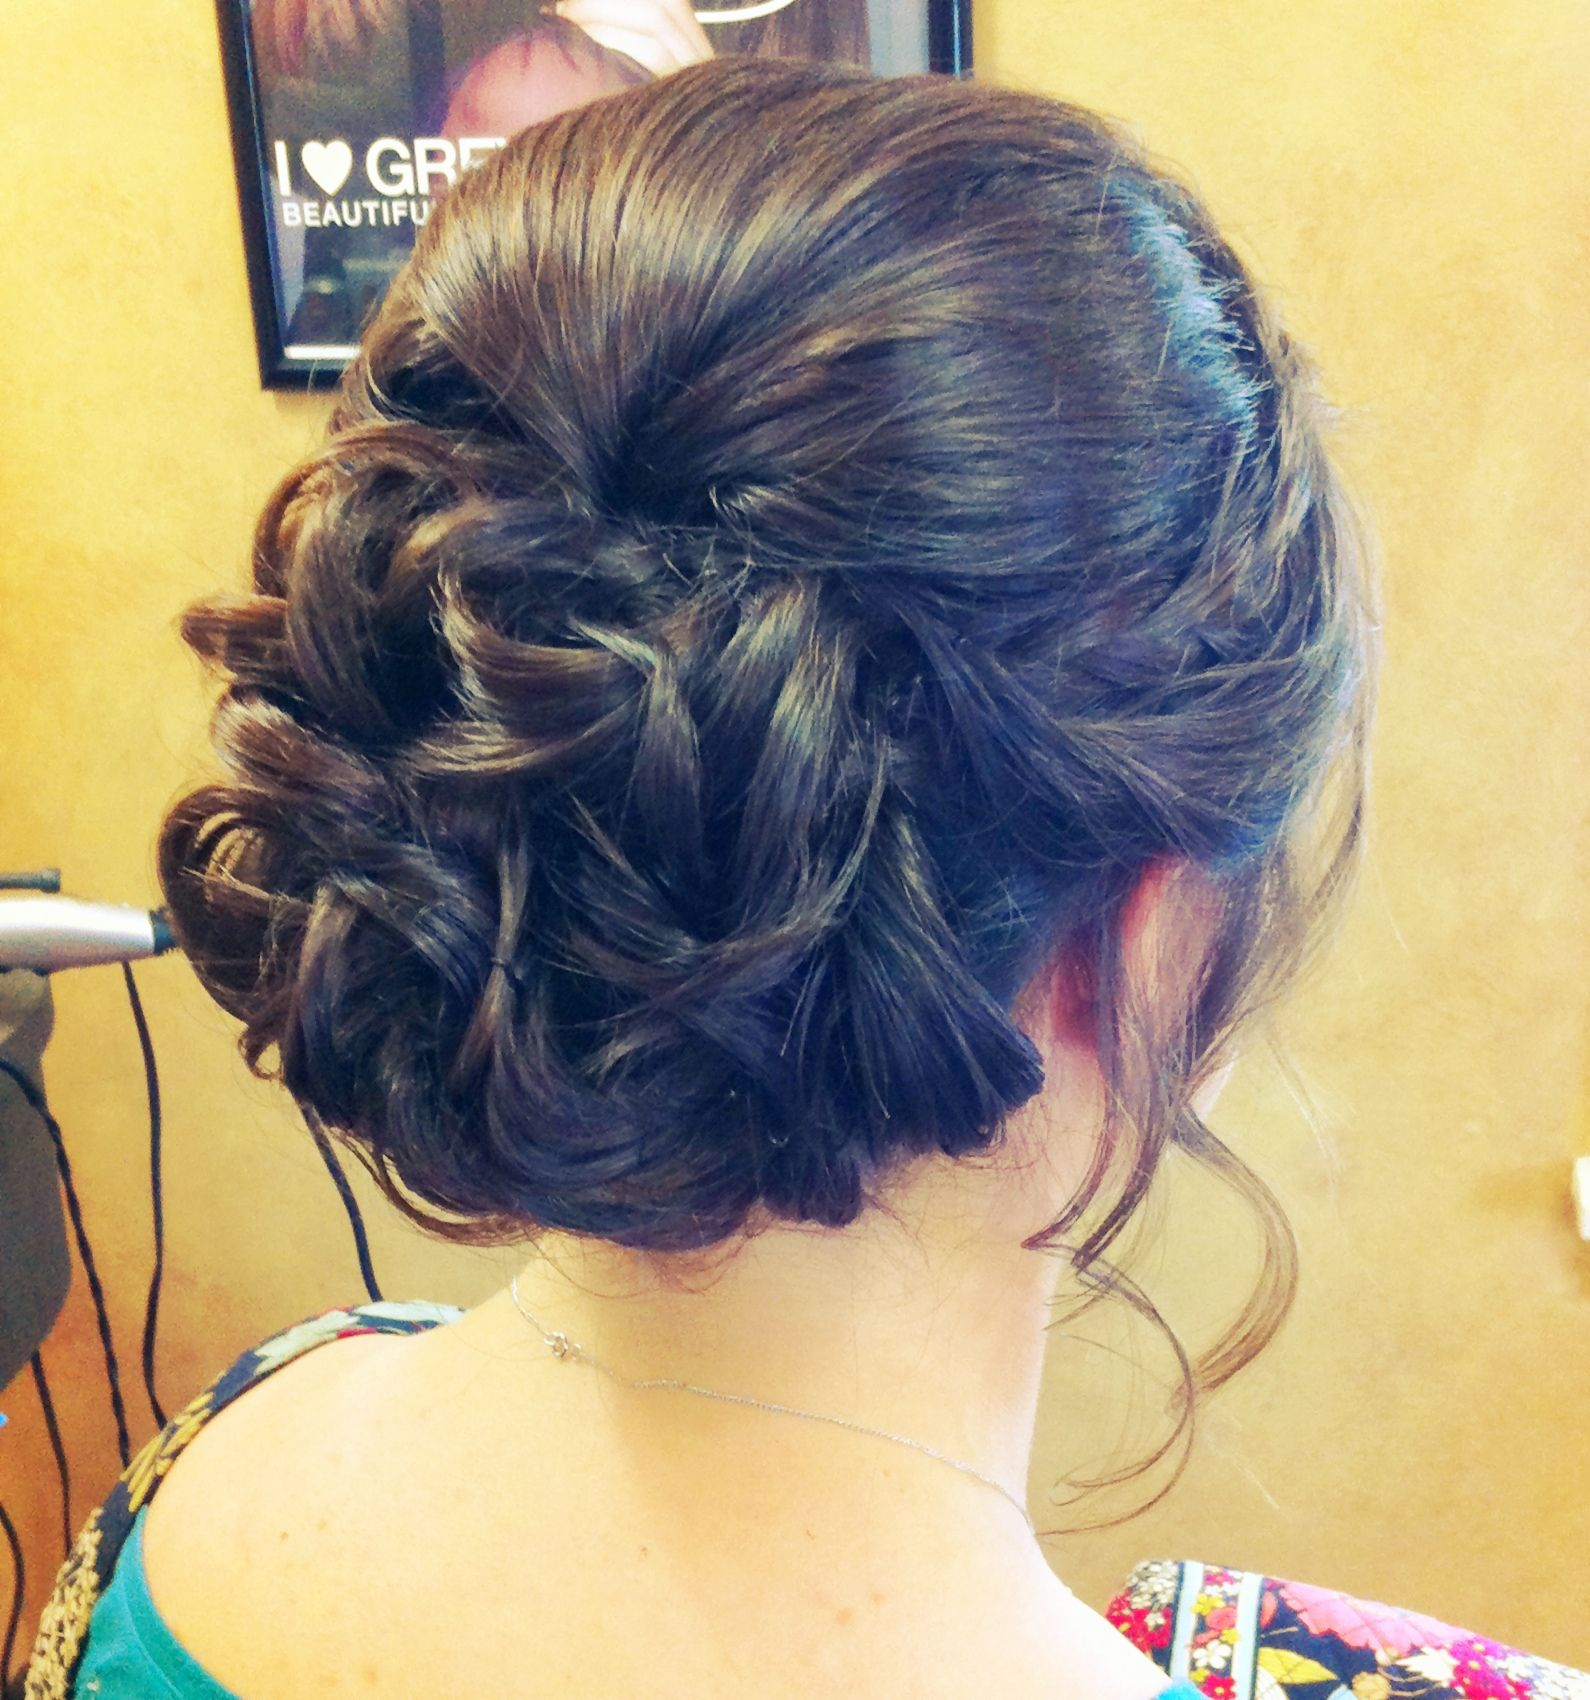 Pin By Marissa Julin On My Hairstyles My Passion Ball Hairstyles Military Ball Hair Hair Styles